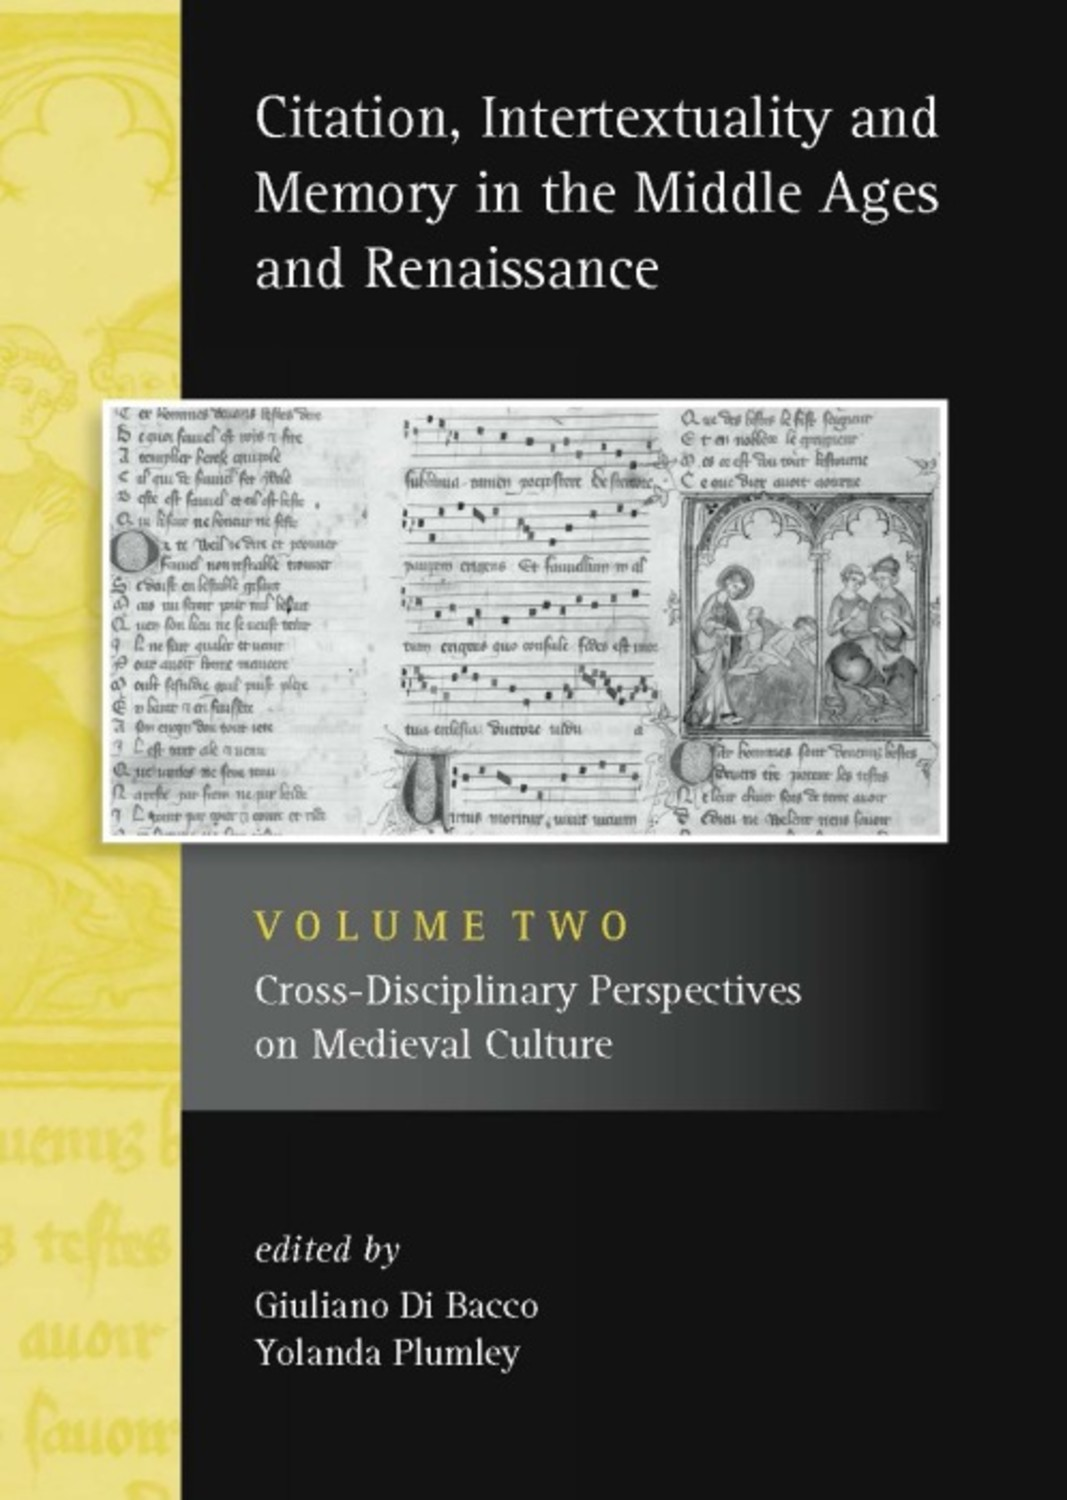 Citation, Intertextuality and Memory in the Middle Ages and Renaissance volume 2